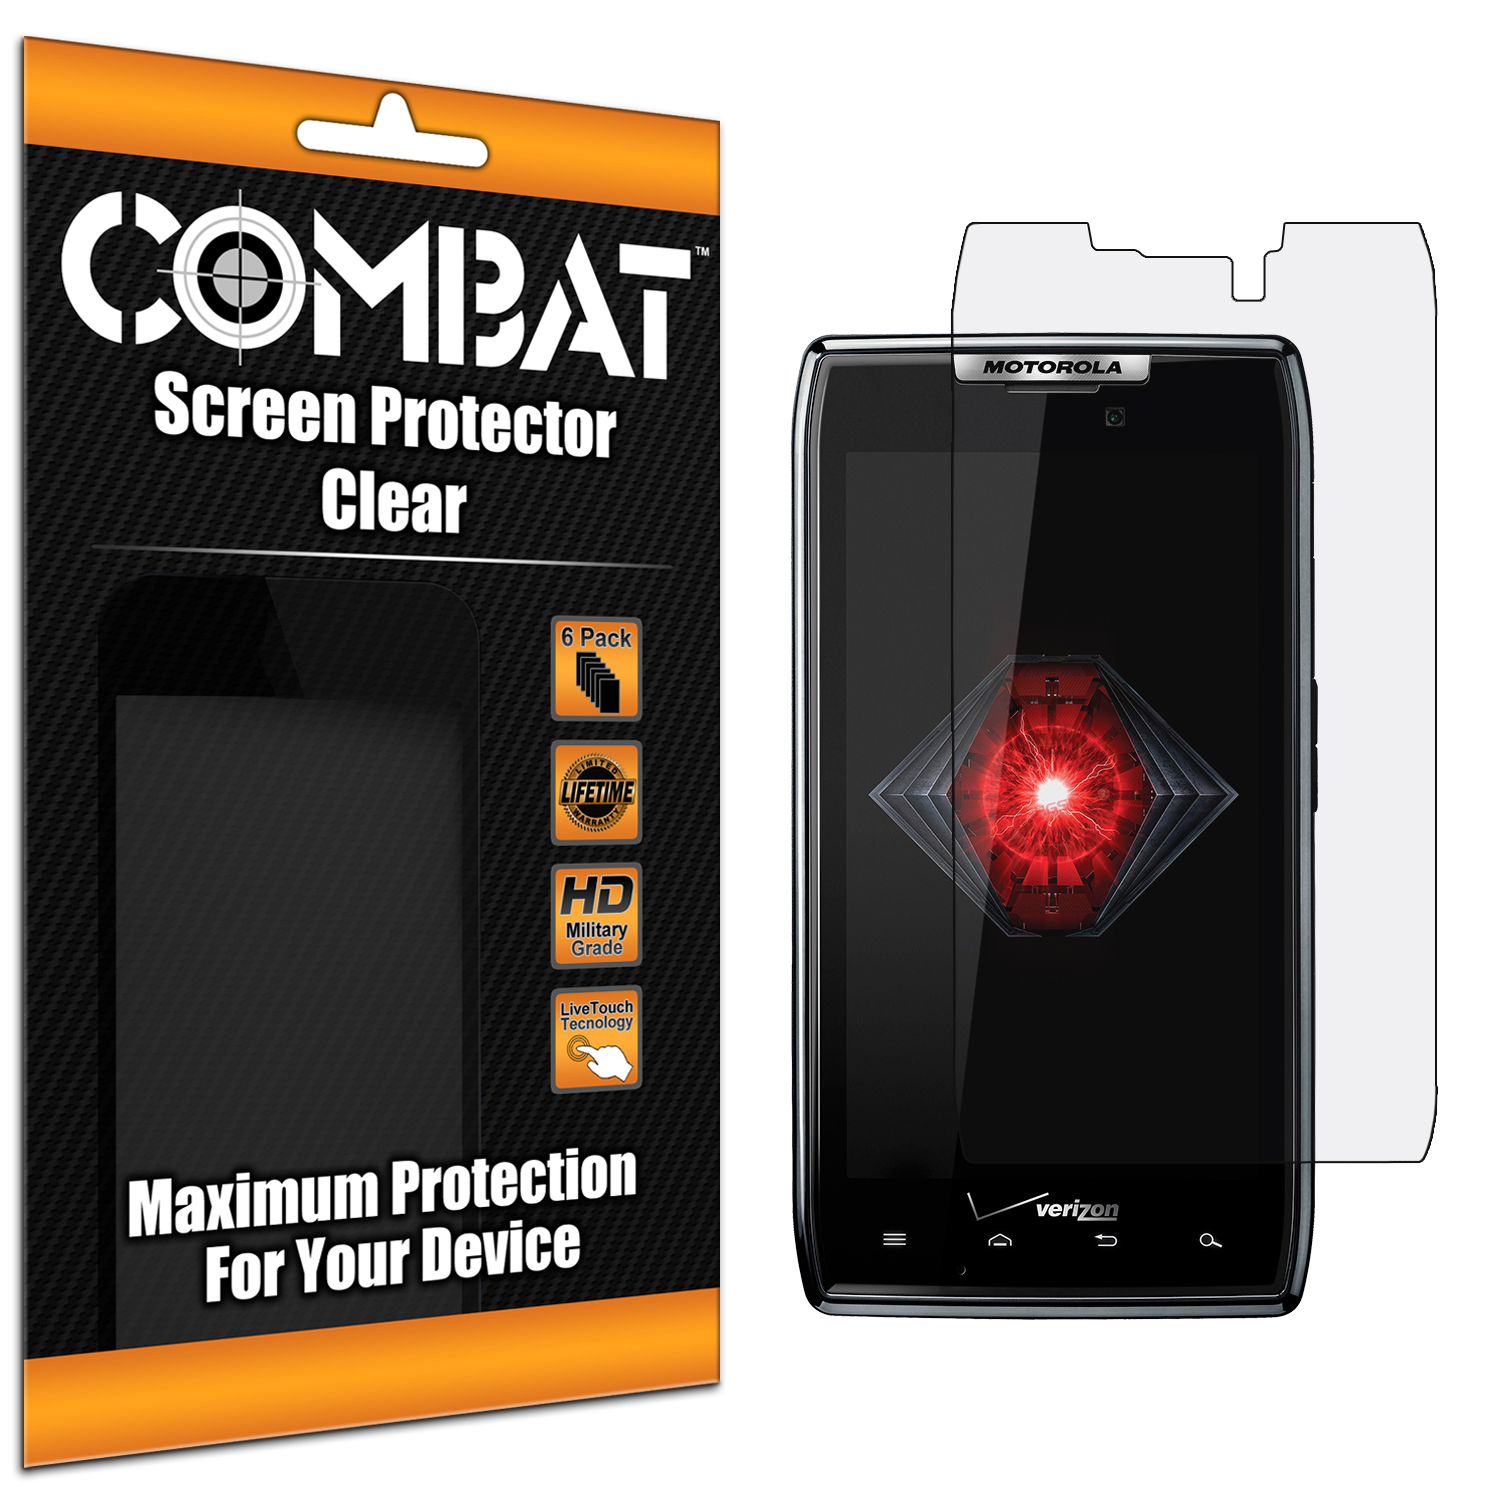 Motorola Droid Razr XT912 Combat 6 Pack HD Clear Screen Protector